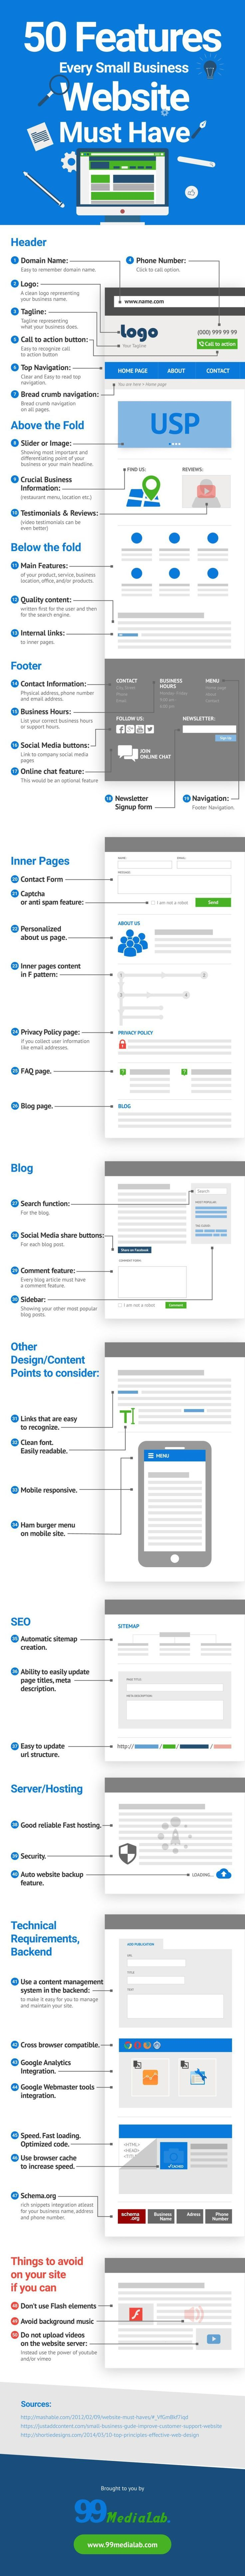 50 Features Every Small Business Website Should Have